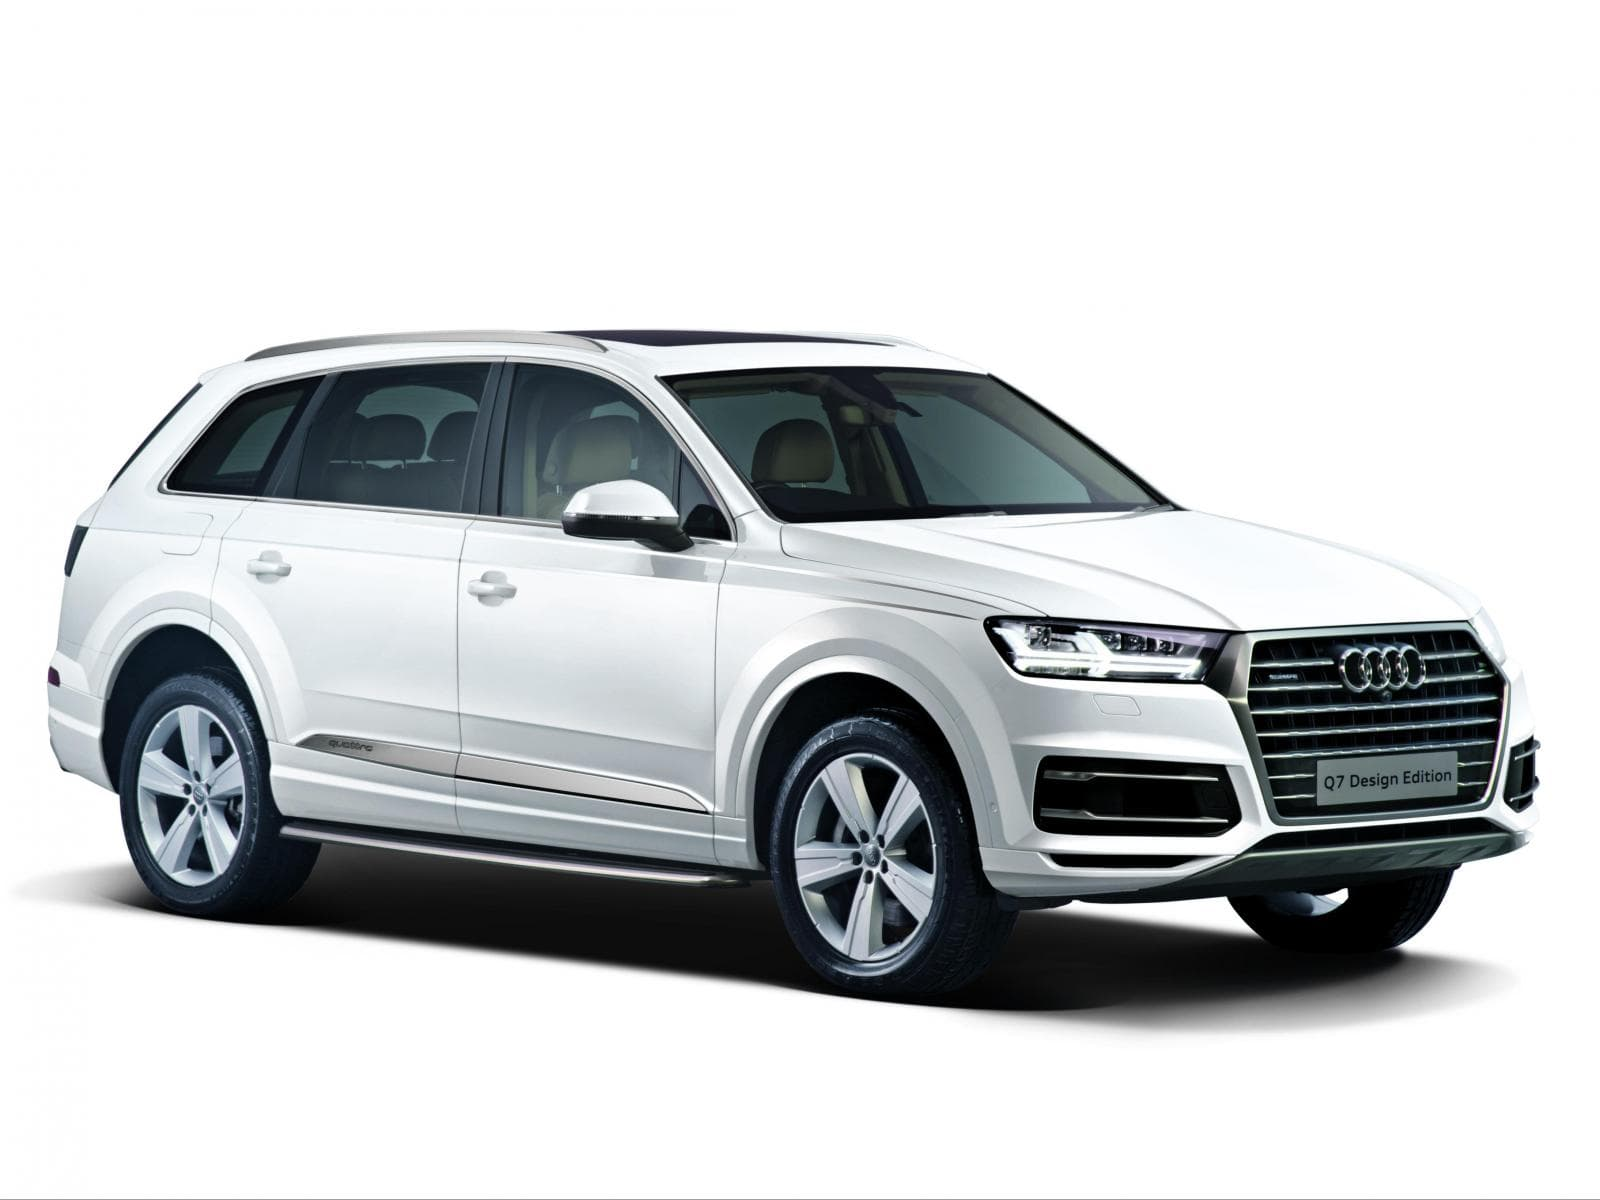 Audi Q7 Wallpapers Free Download